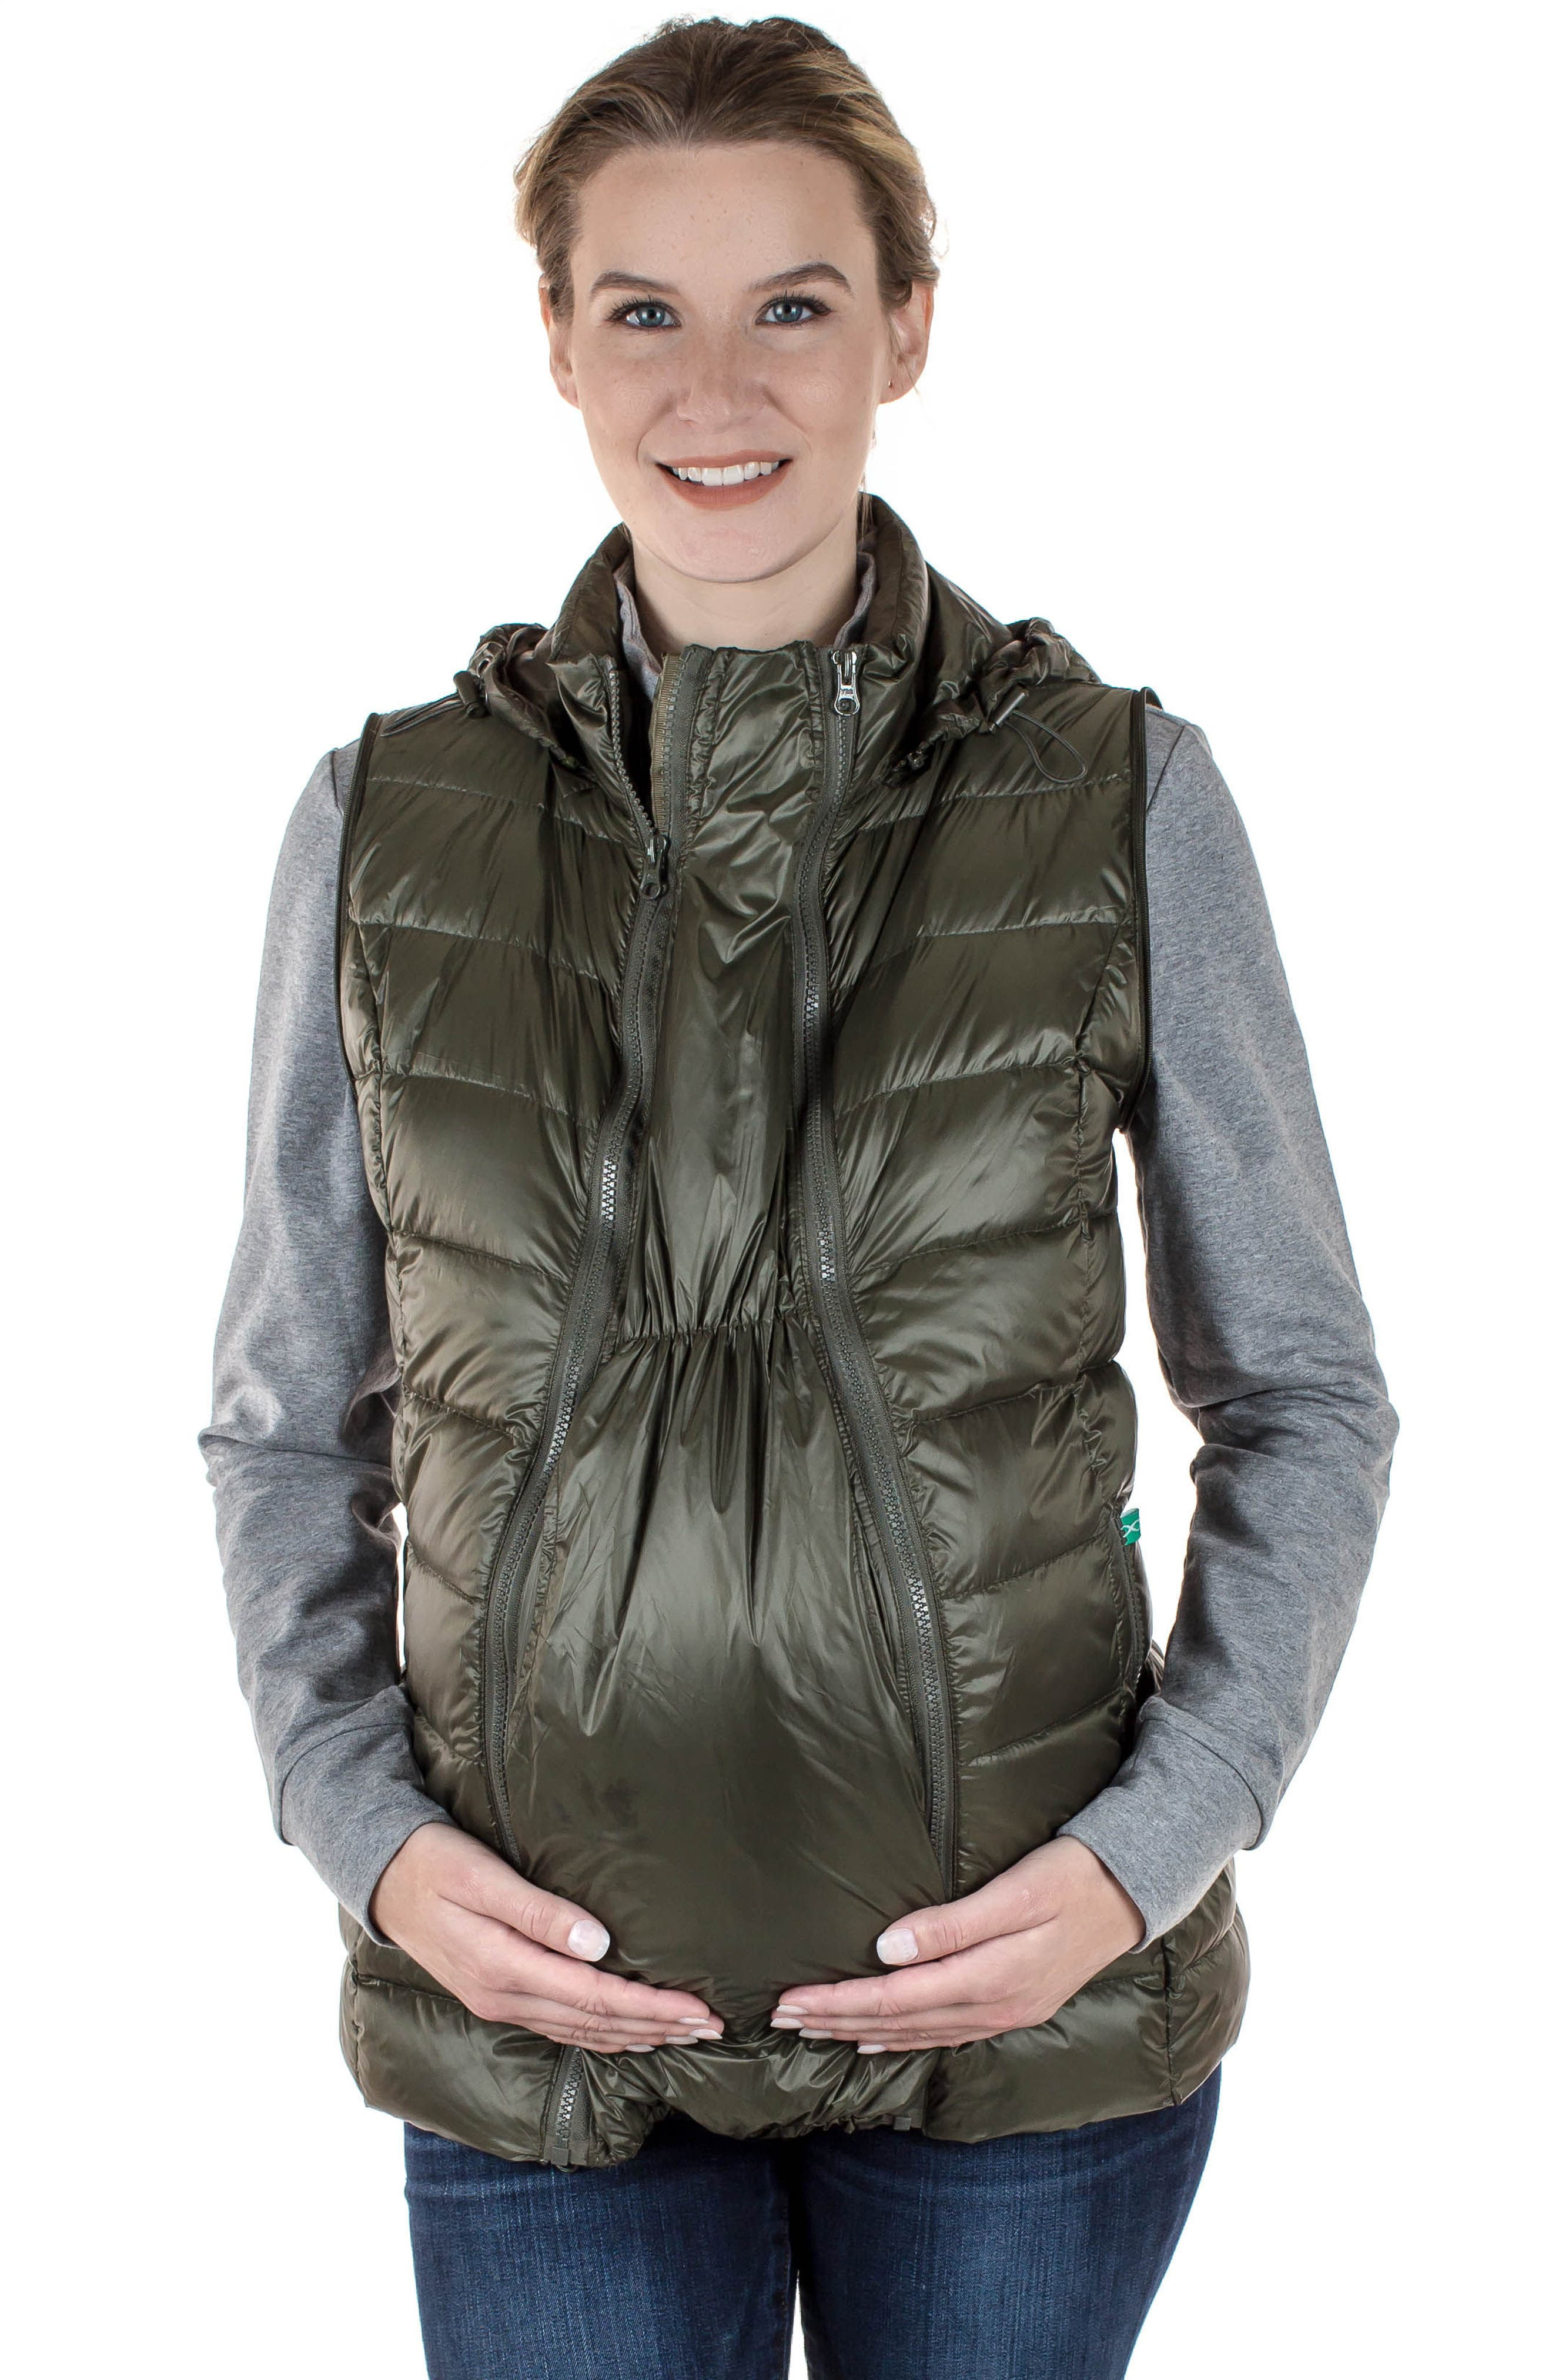 Lightweight Puffer Convertible 3-in-1 Maternity Jacket,                             Alternate thumbnail 10, color,                             KHAKI GREEN